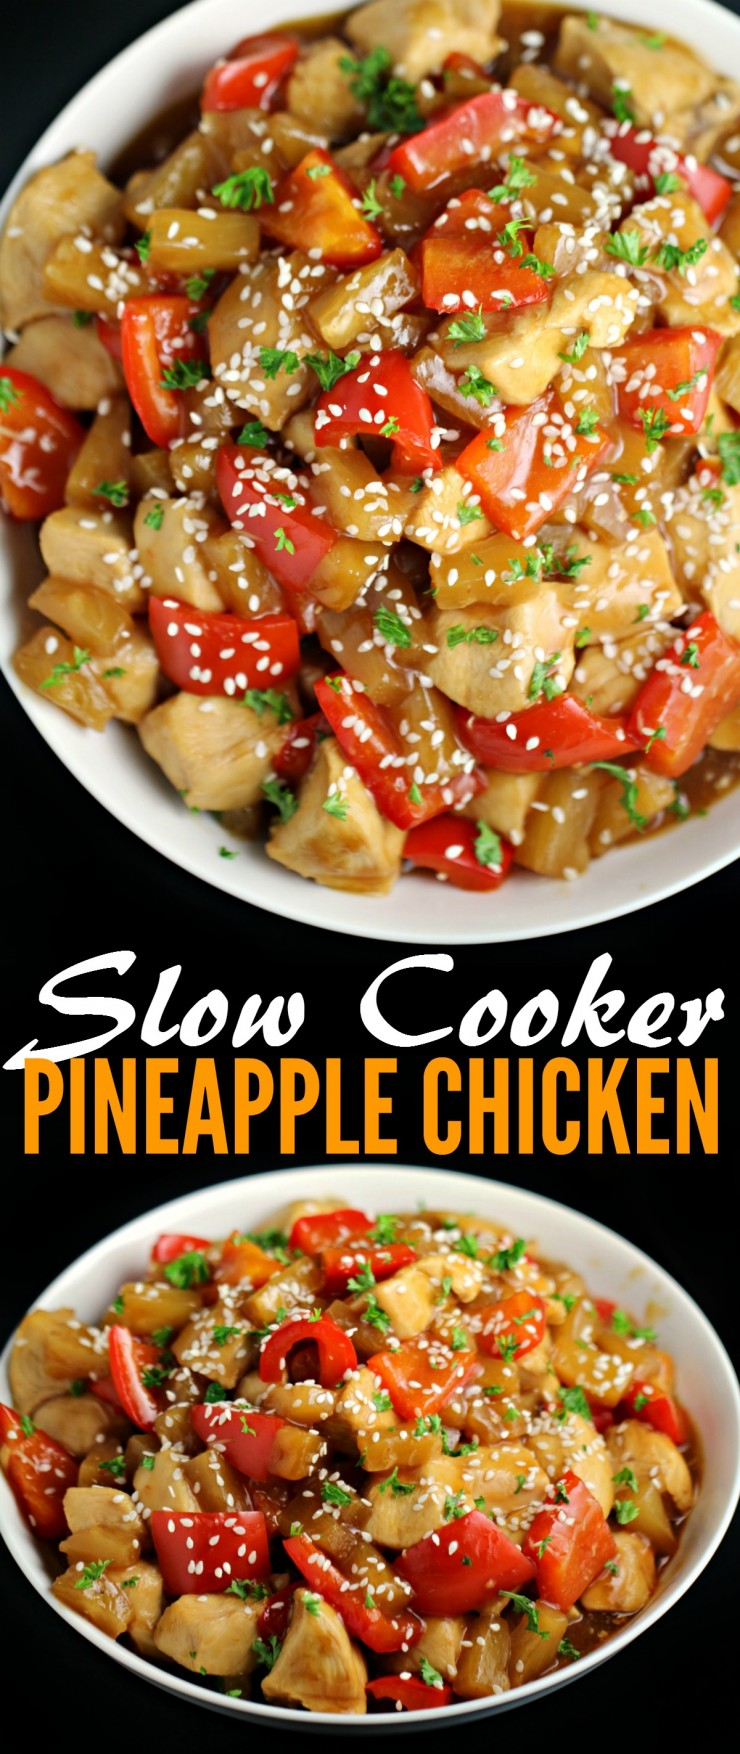 Make sweet and tangy pineapple chicken right in your slow cooker. Juicy pinapples, tender chicken and crisp red pepper come together for this flavourful crock pot dinner.